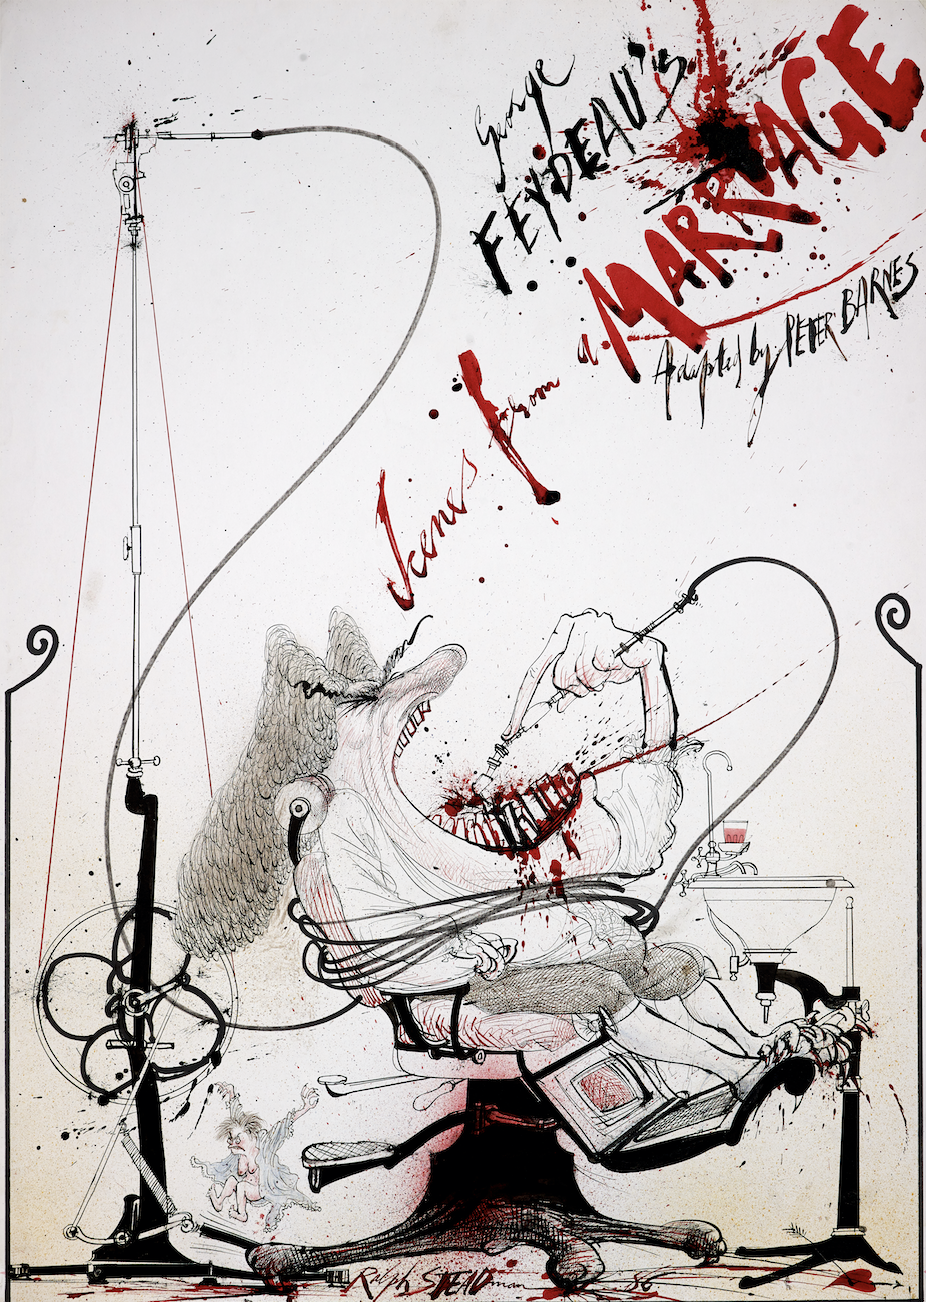 Scenes From a Marriage theatre poster artwork by Ralph Steadman